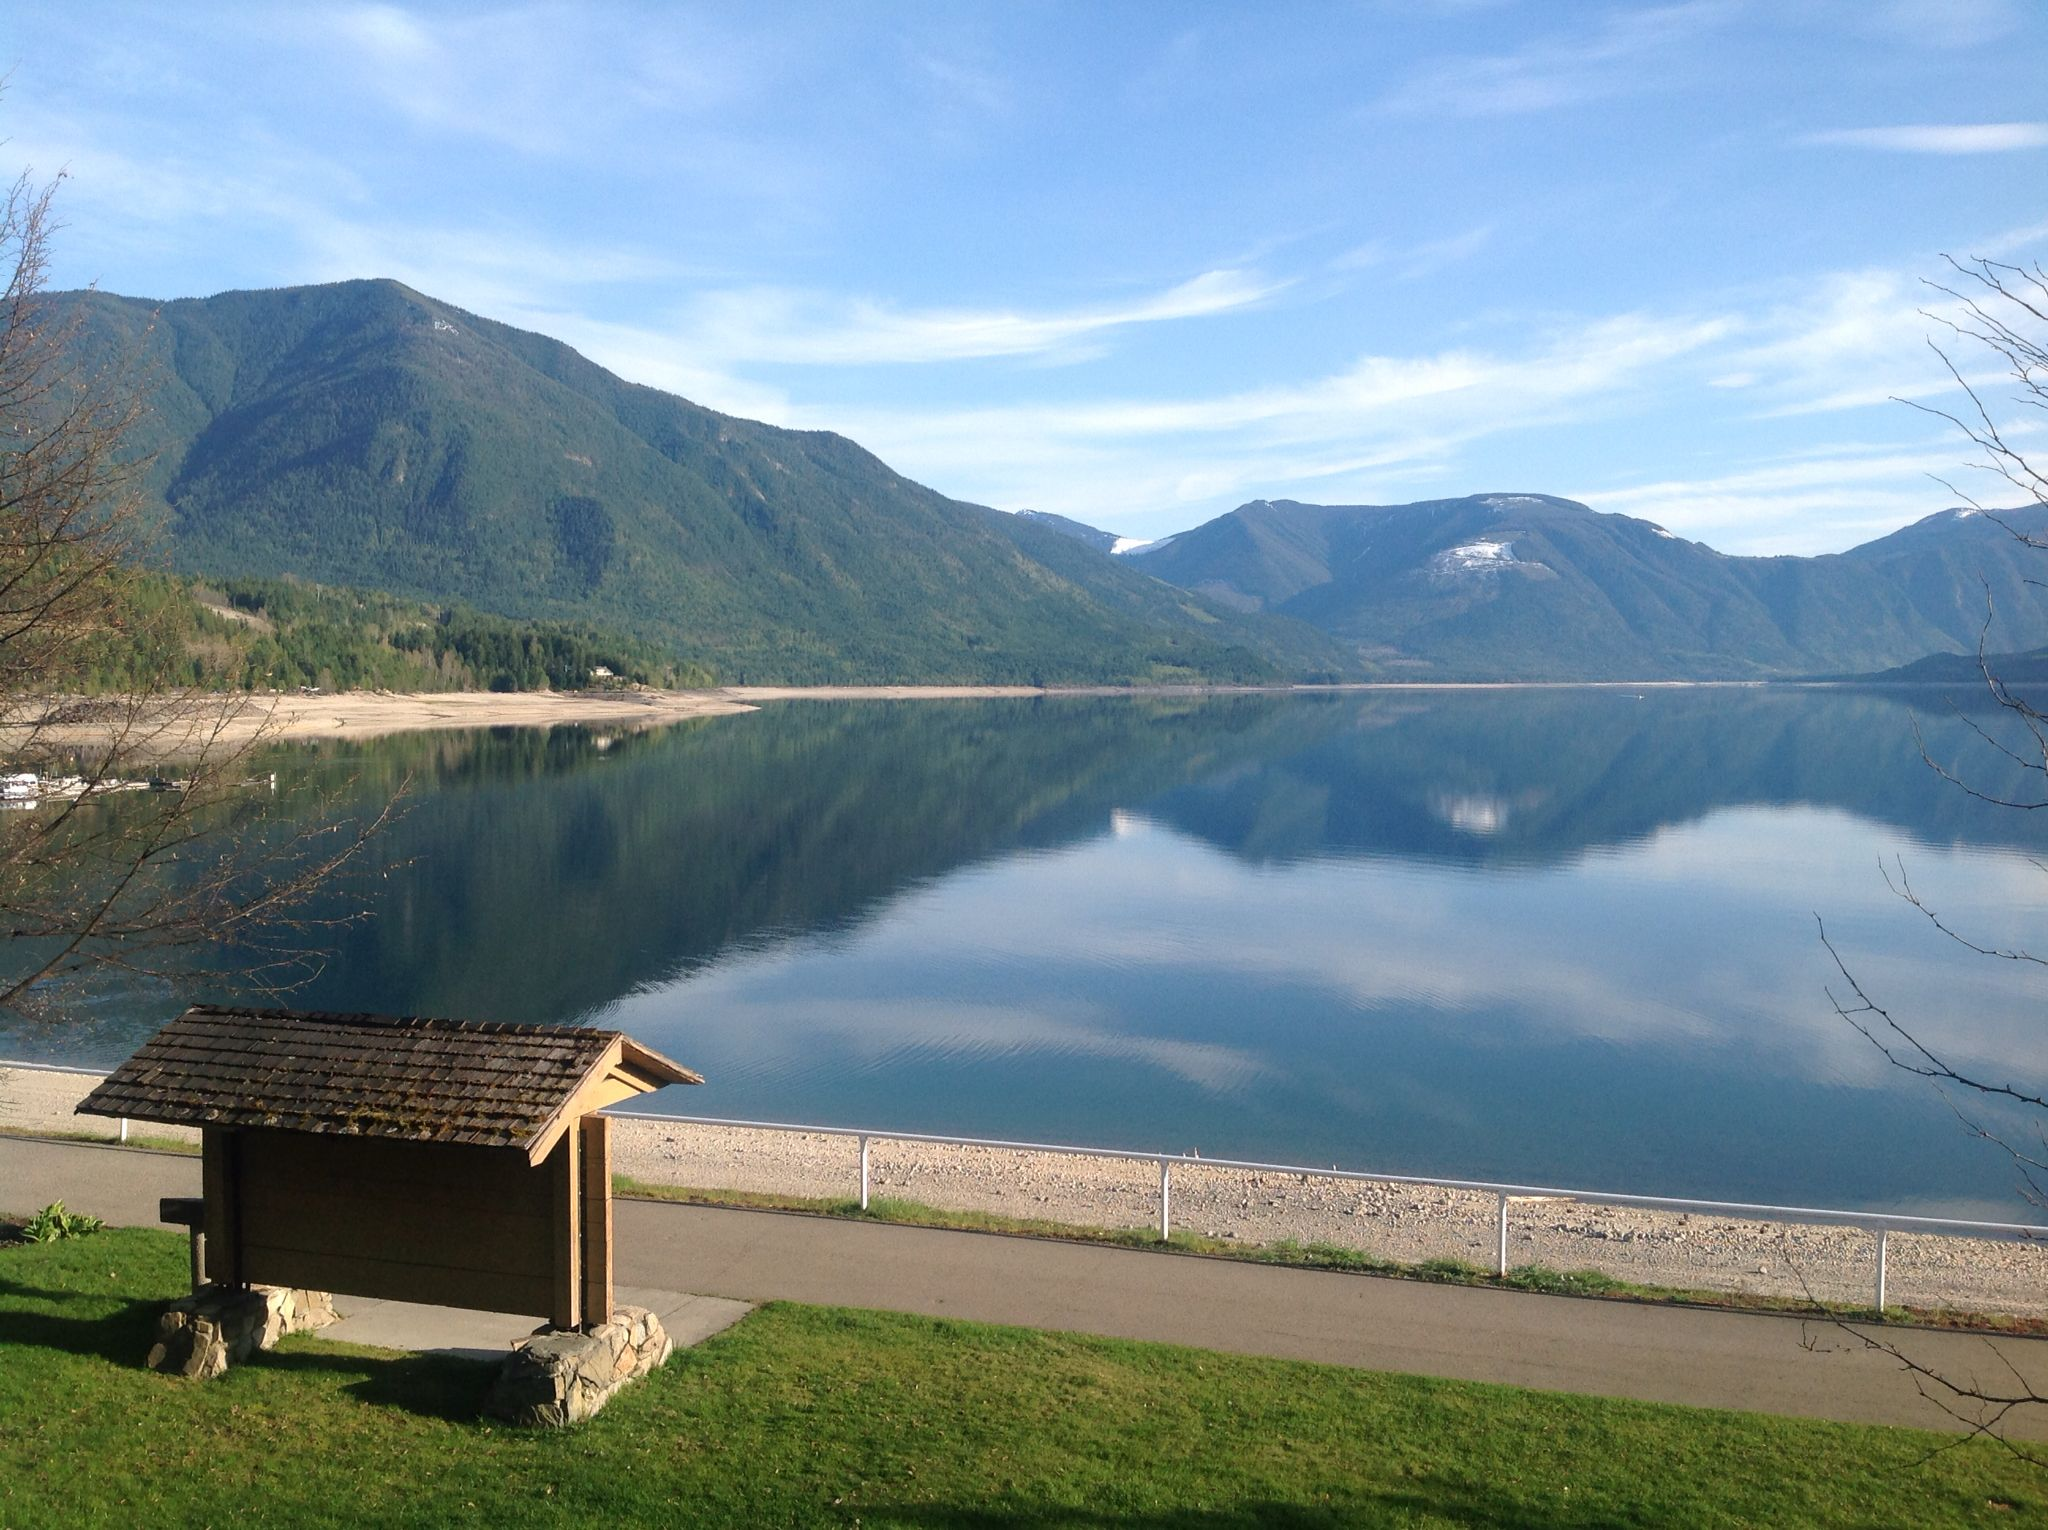 Taken From The Patio At Leland Hotel In Nakusp Bc